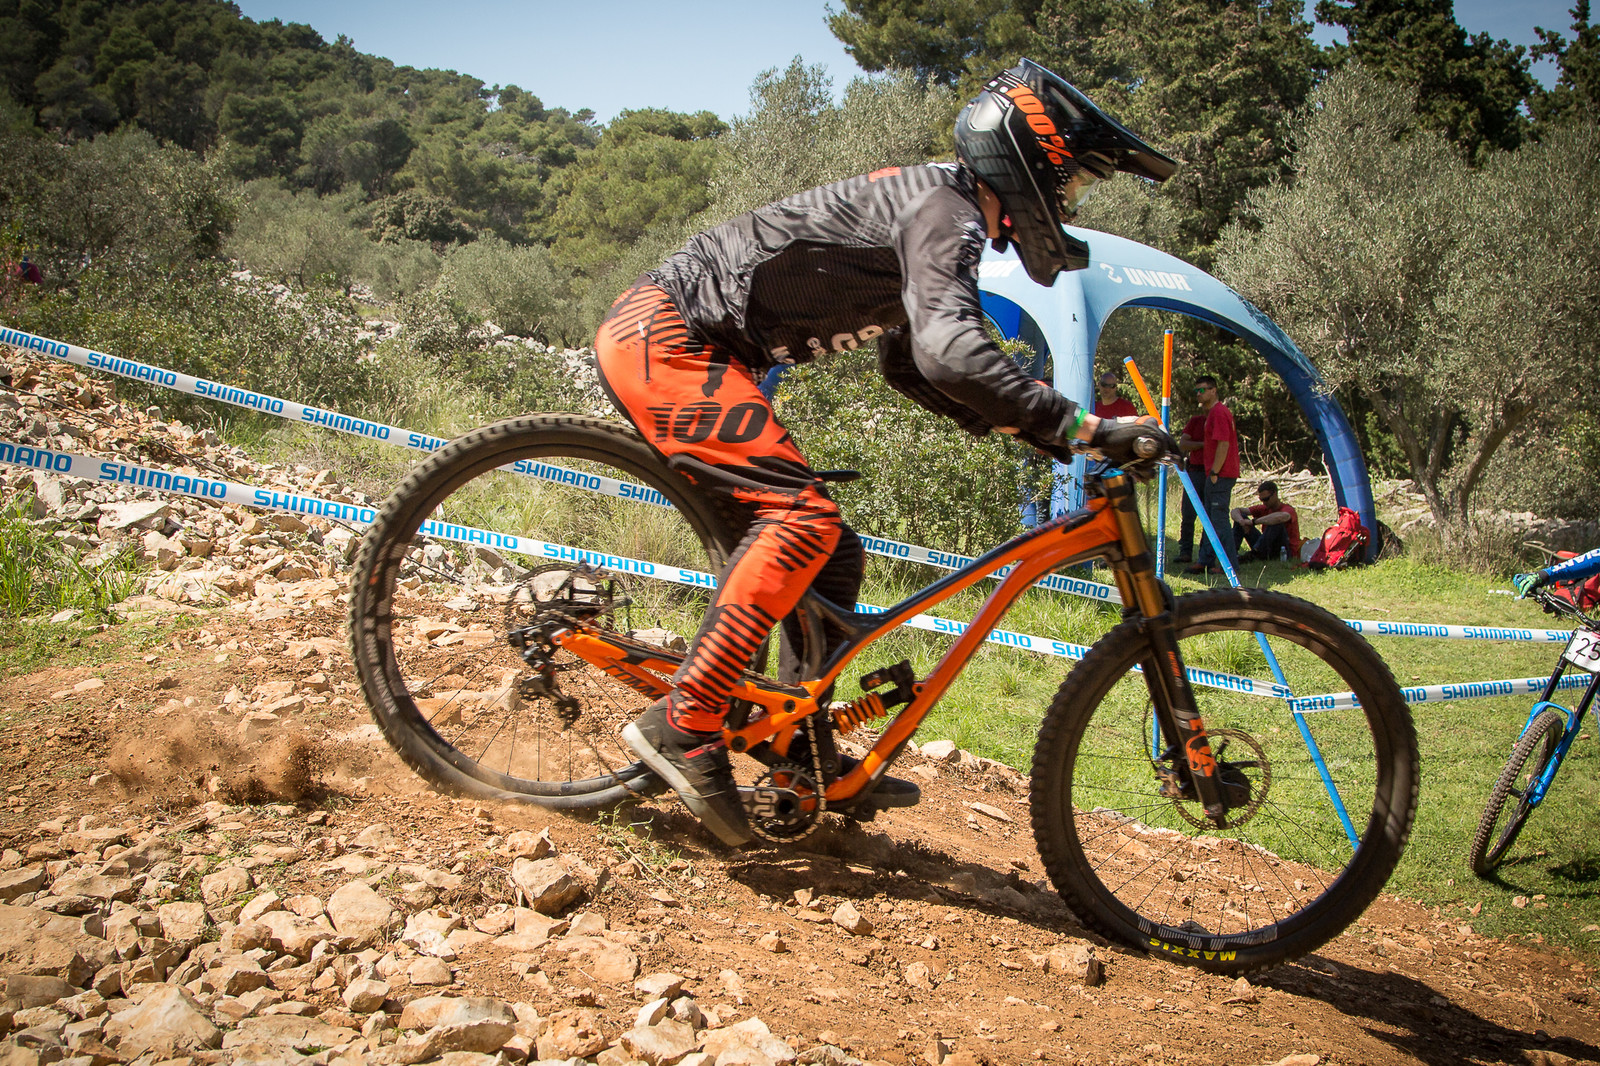 DANG BRUCE! G-Out Project Croatia - Commencal Supreme DH 29 Bottom Out - G-Out Project - Croatia World Cup DH - Mountain Biking Pictures - Vital MTB